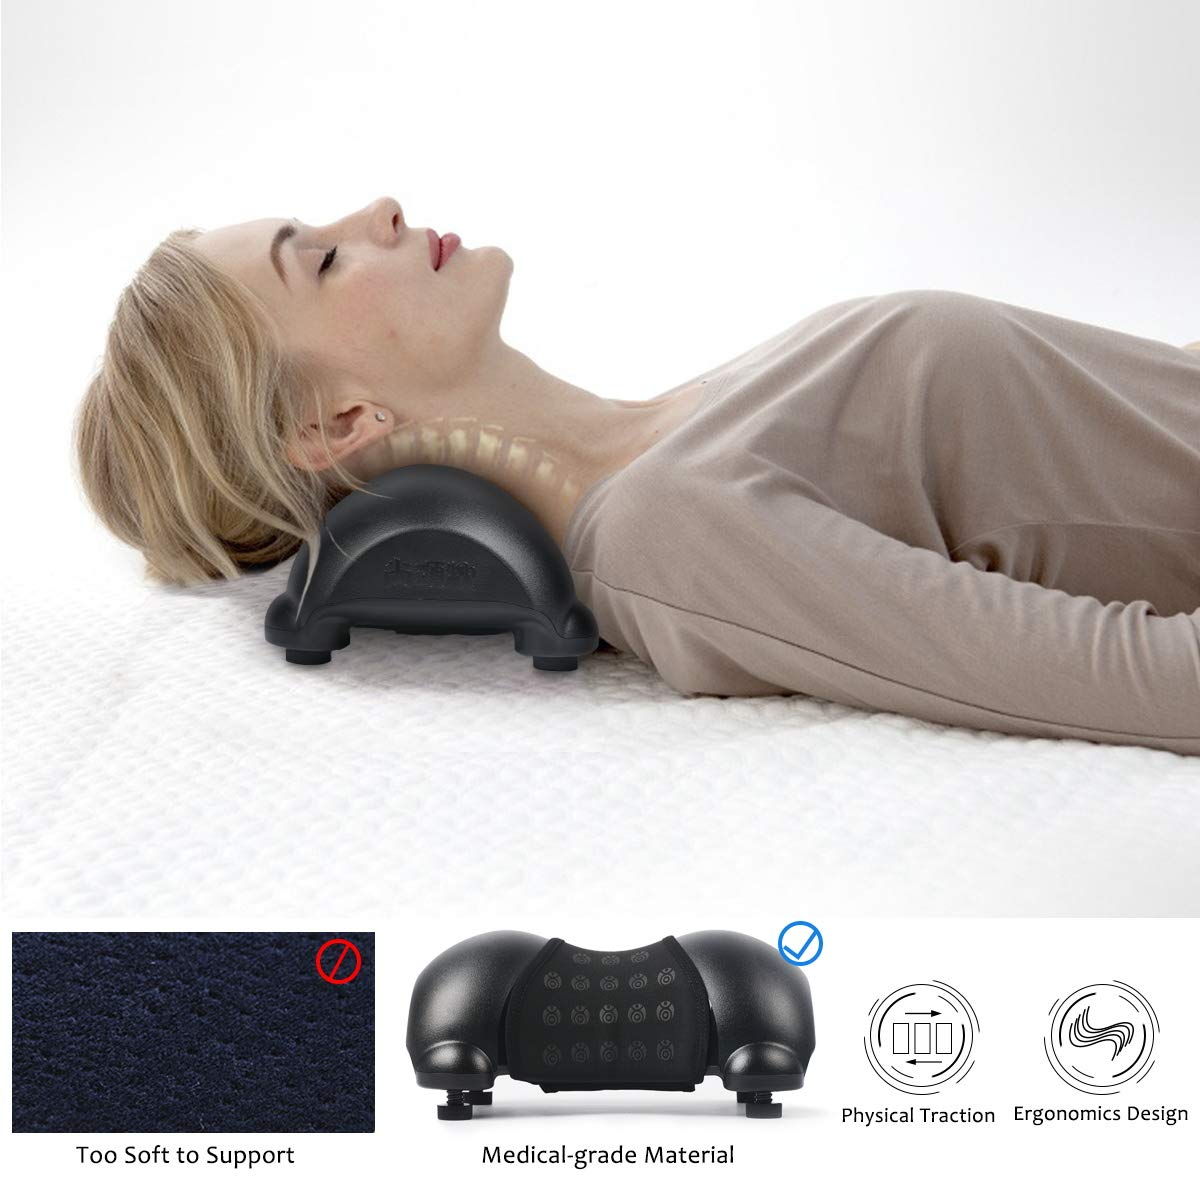 Cervical Neck Traction Device, Neck Pain Relief, Portable Cervical Orthotic Pillow- Adjustable Height with Removable and Washable Cover, Best Gift for Mom & Dad